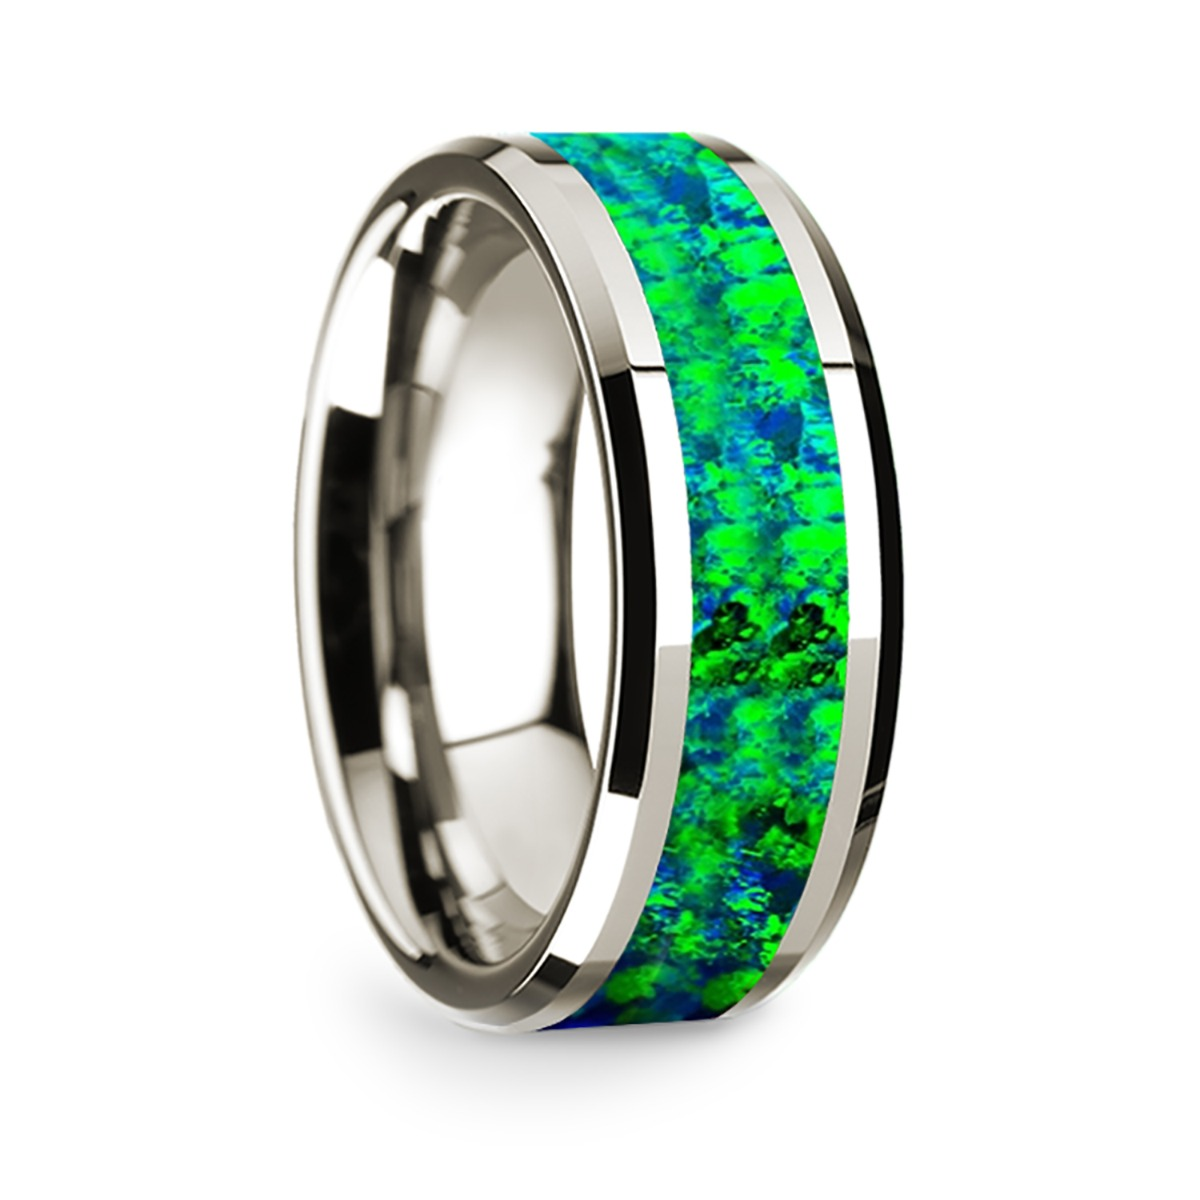 14k White Gold Polished Beveled Edges Wedding Ring with Blue and Green Opal Inlay - 8 mm